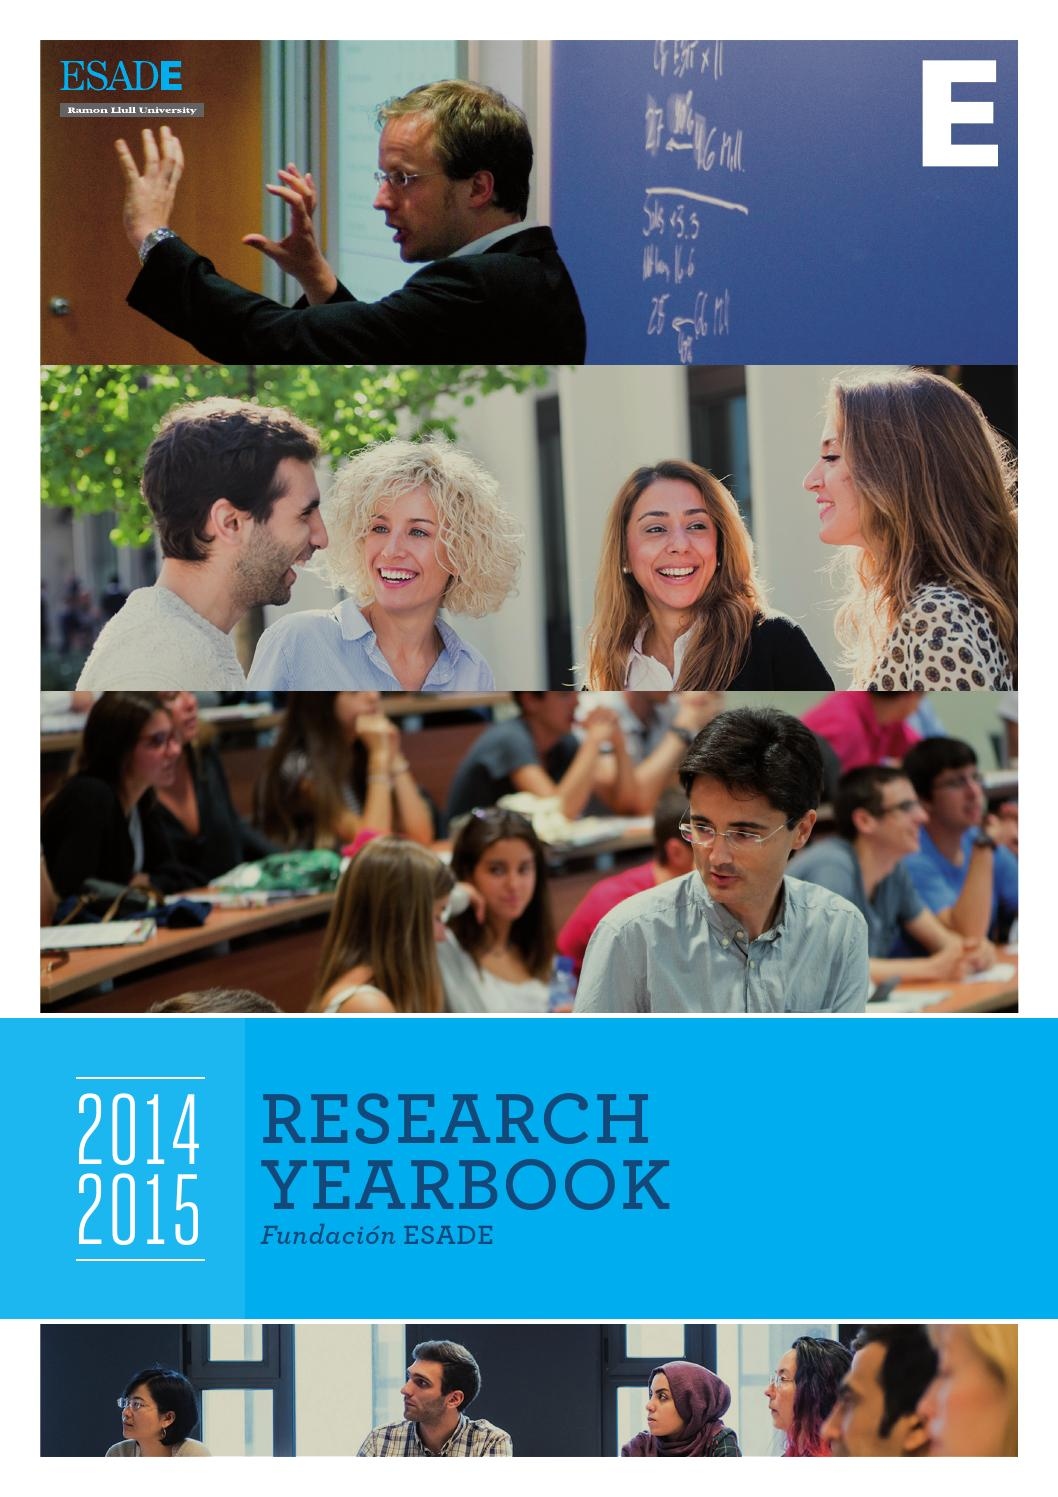 Research yearbook 2014 2015 by ESADE - issuu 2c7d7eff46